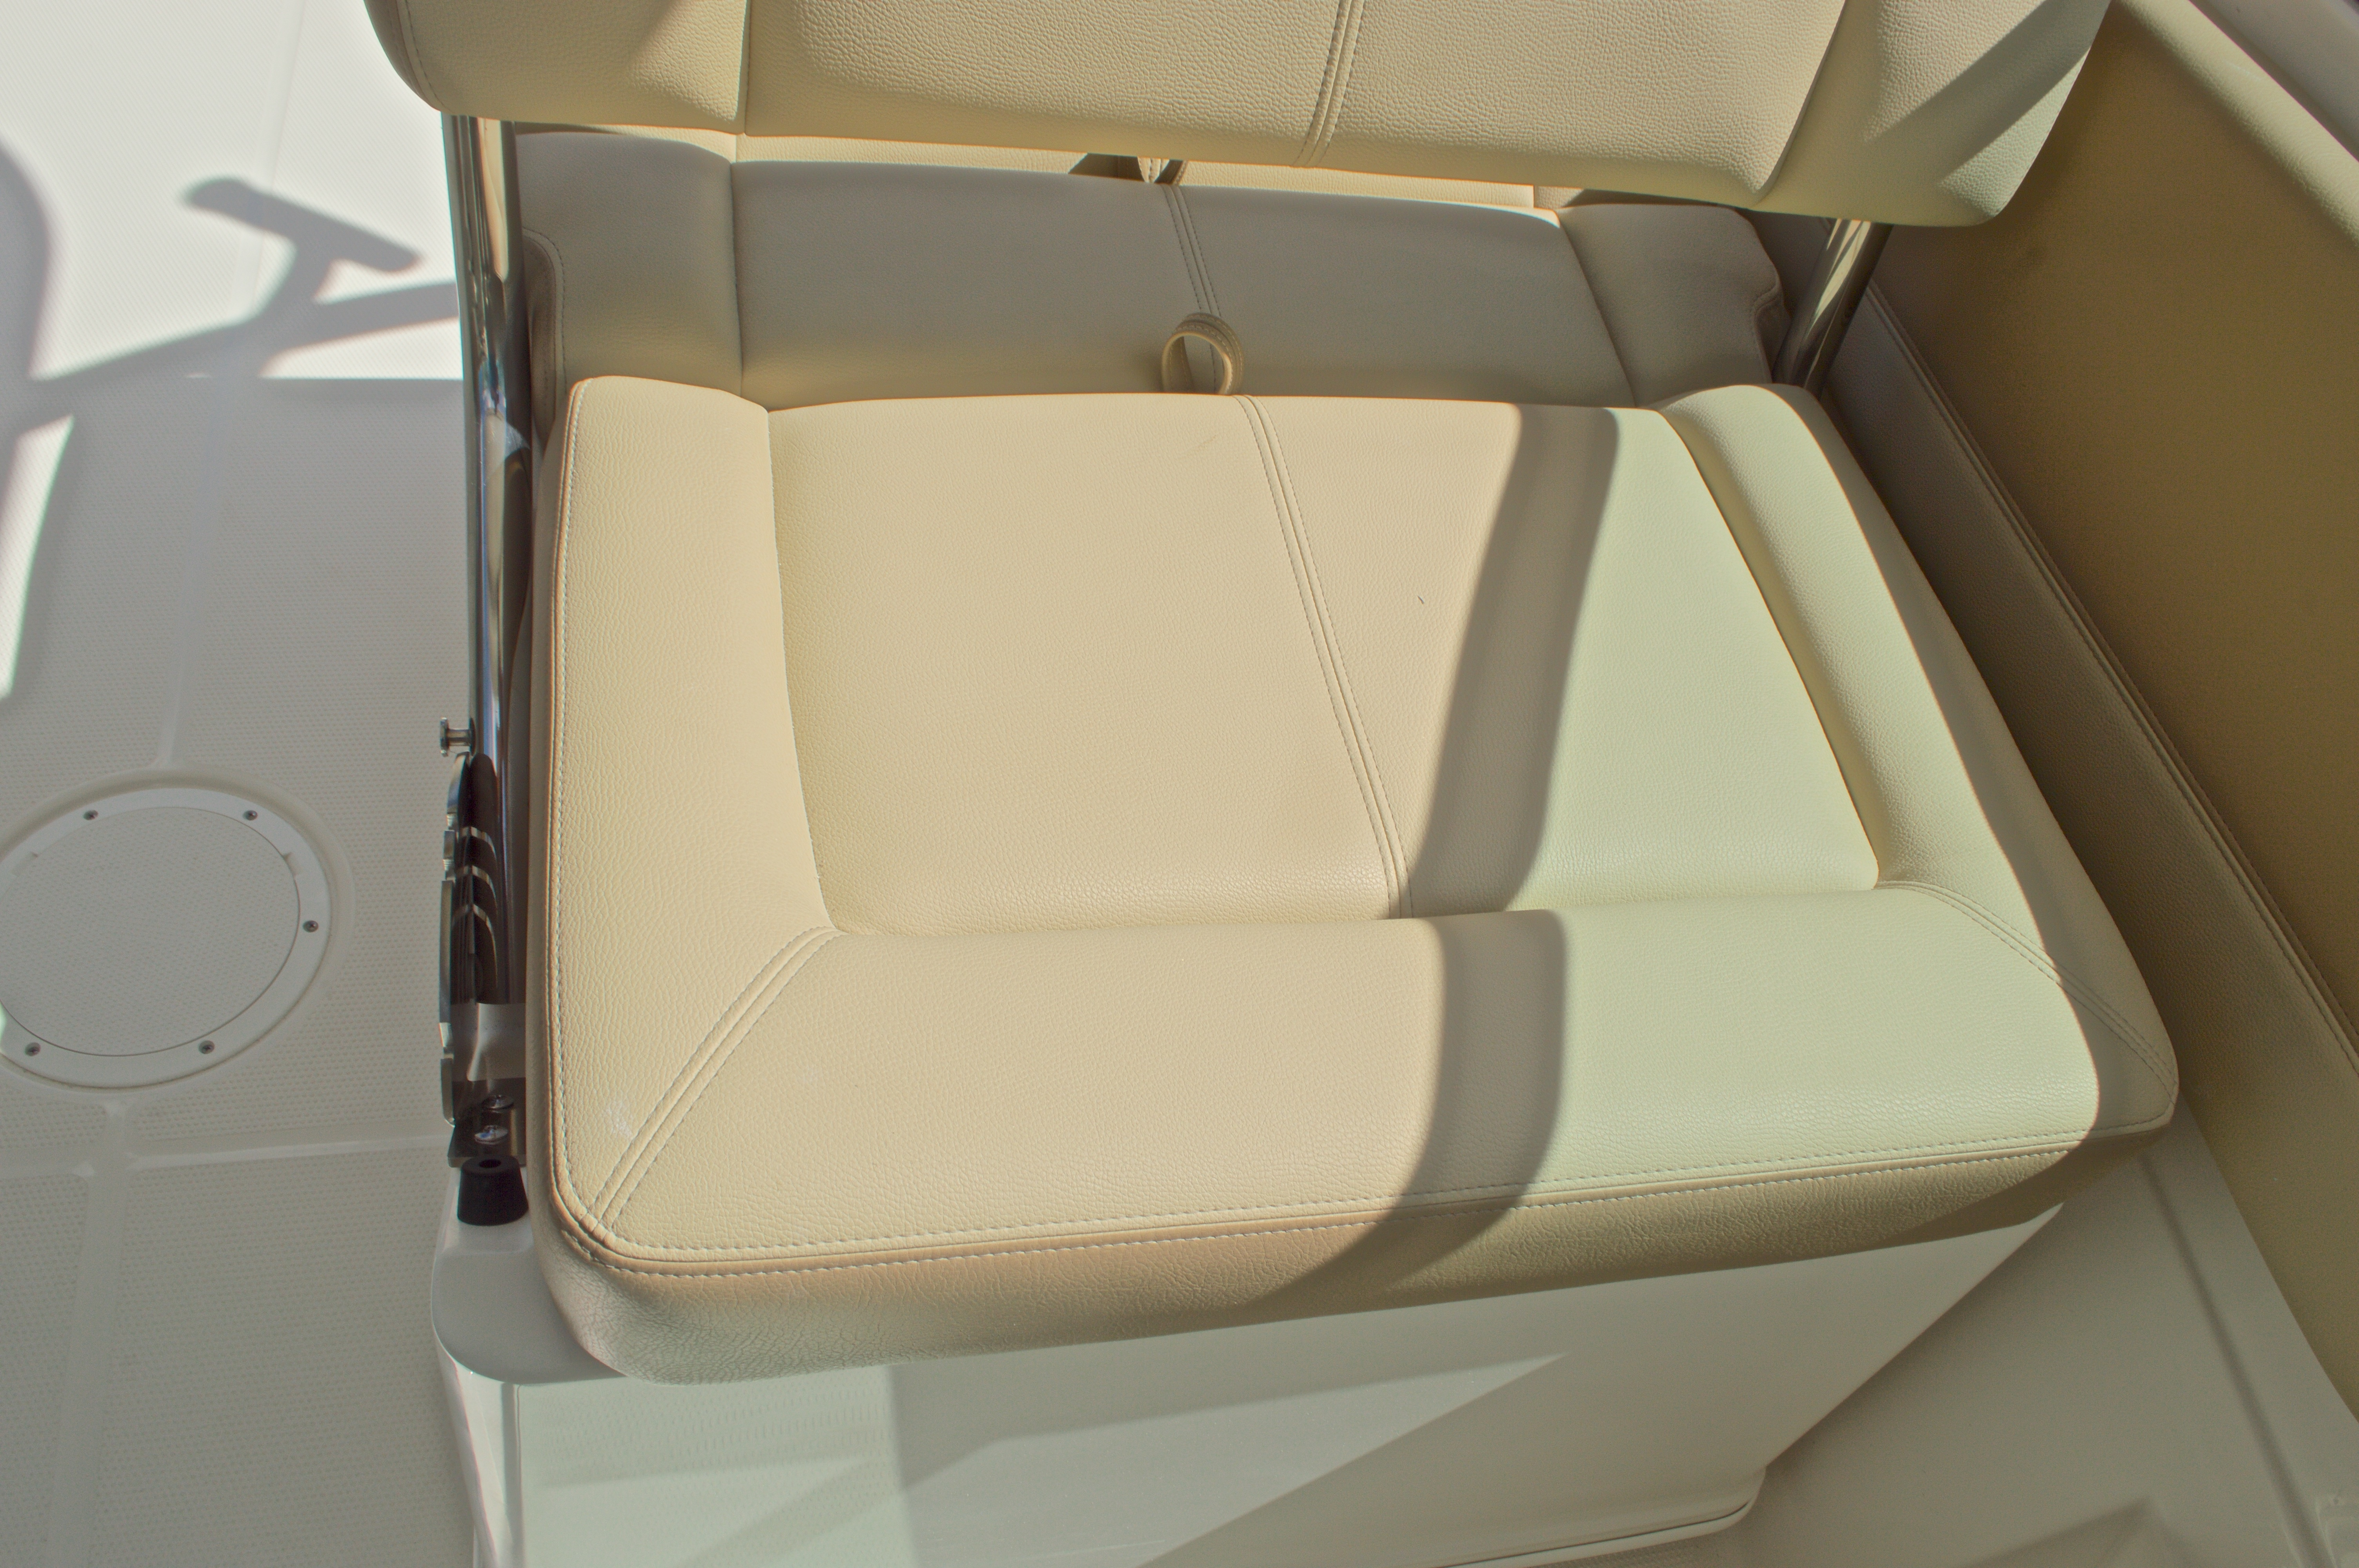 Thumbnail 36 for New 2017 Sailfish 275 Dual Console boat for sale in Vero Beach, FL